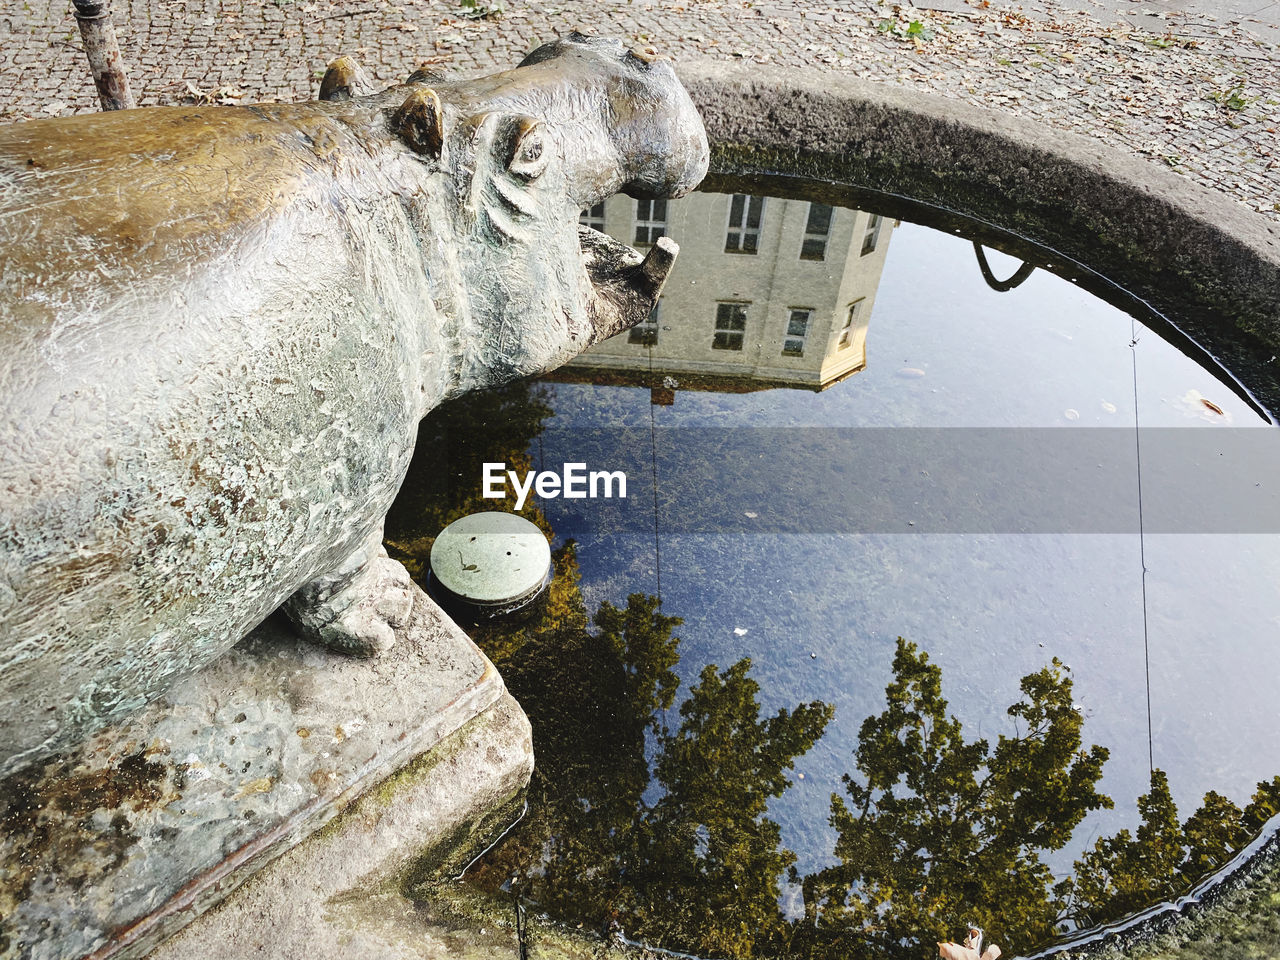 HIGH ANGLE VIEW OF HORSE STATUE BY WATER